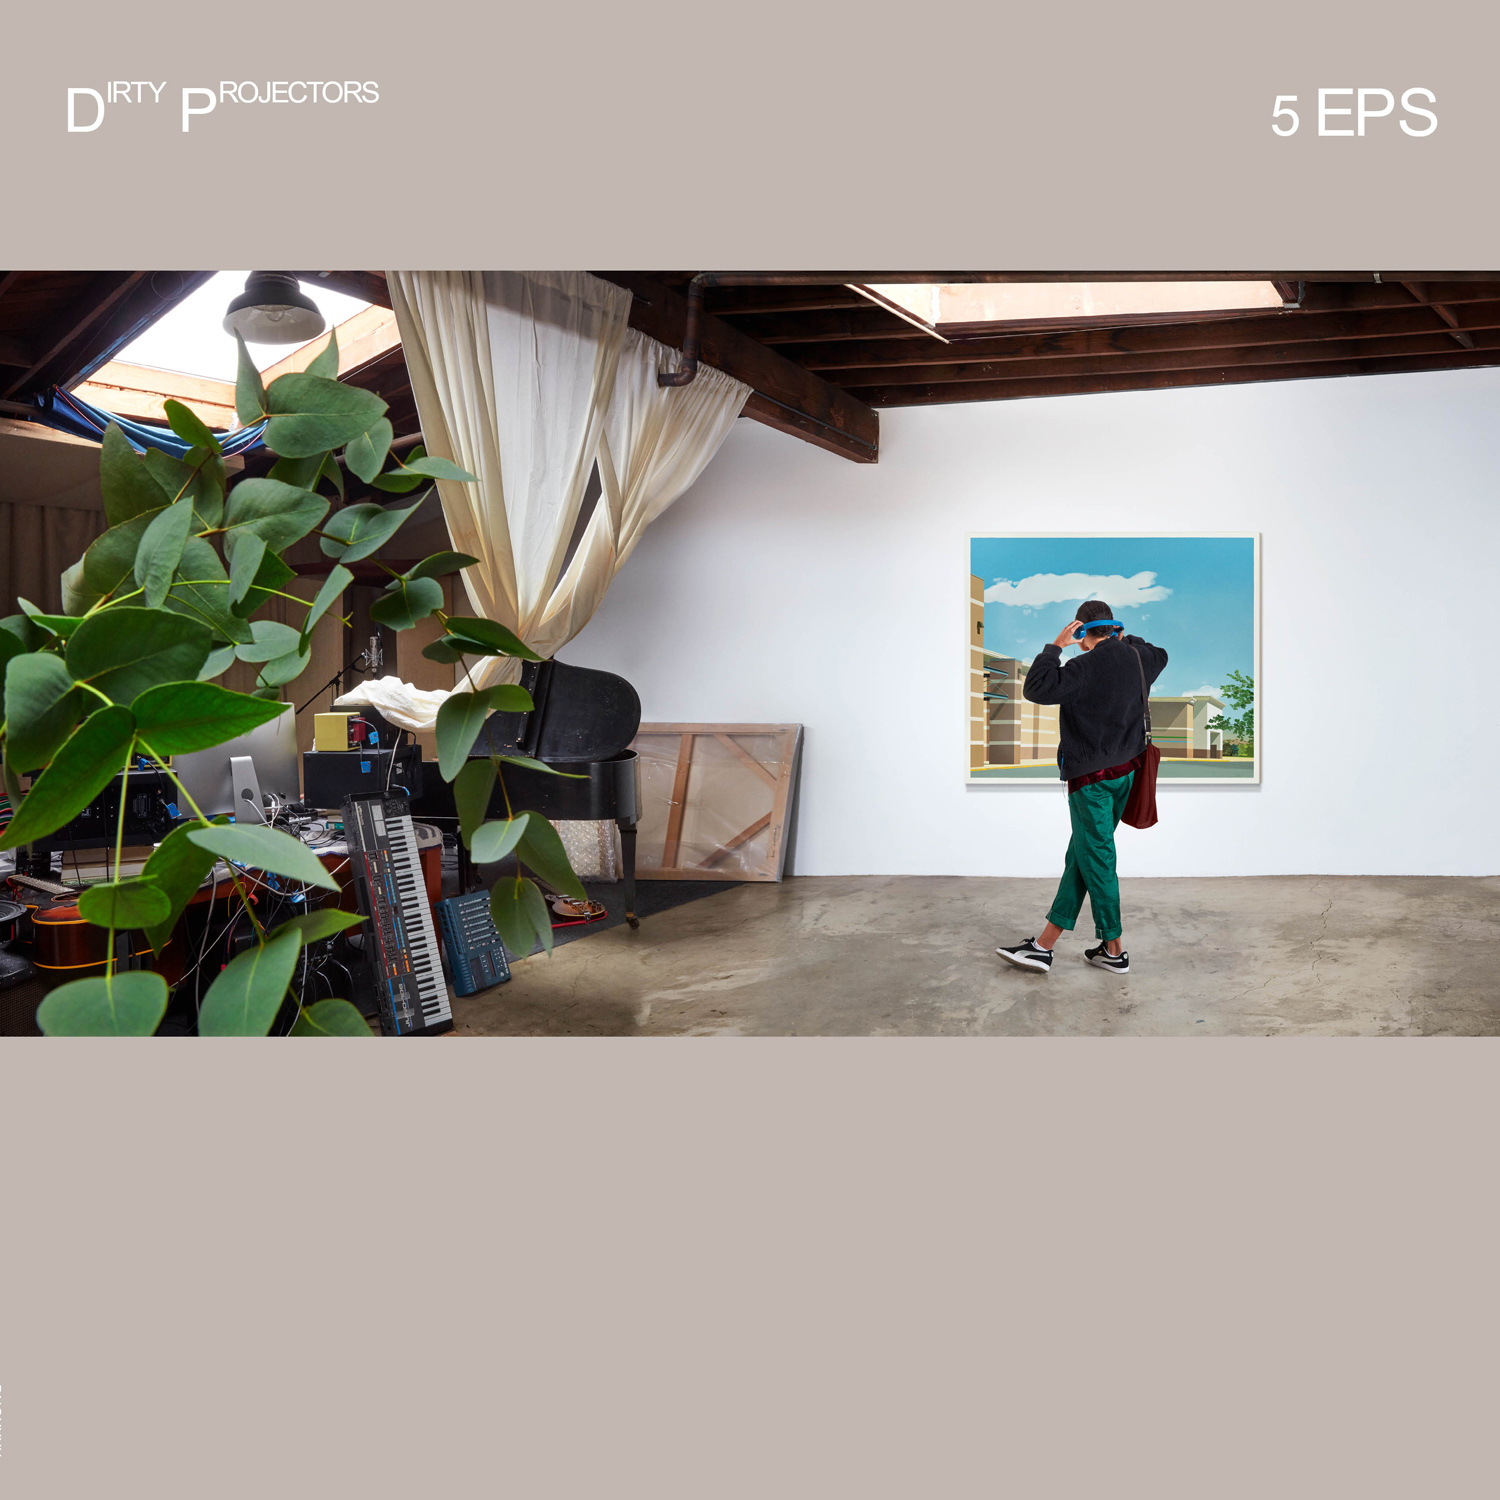 Dirty Projectors 5EPs album cover artwork stream track by track